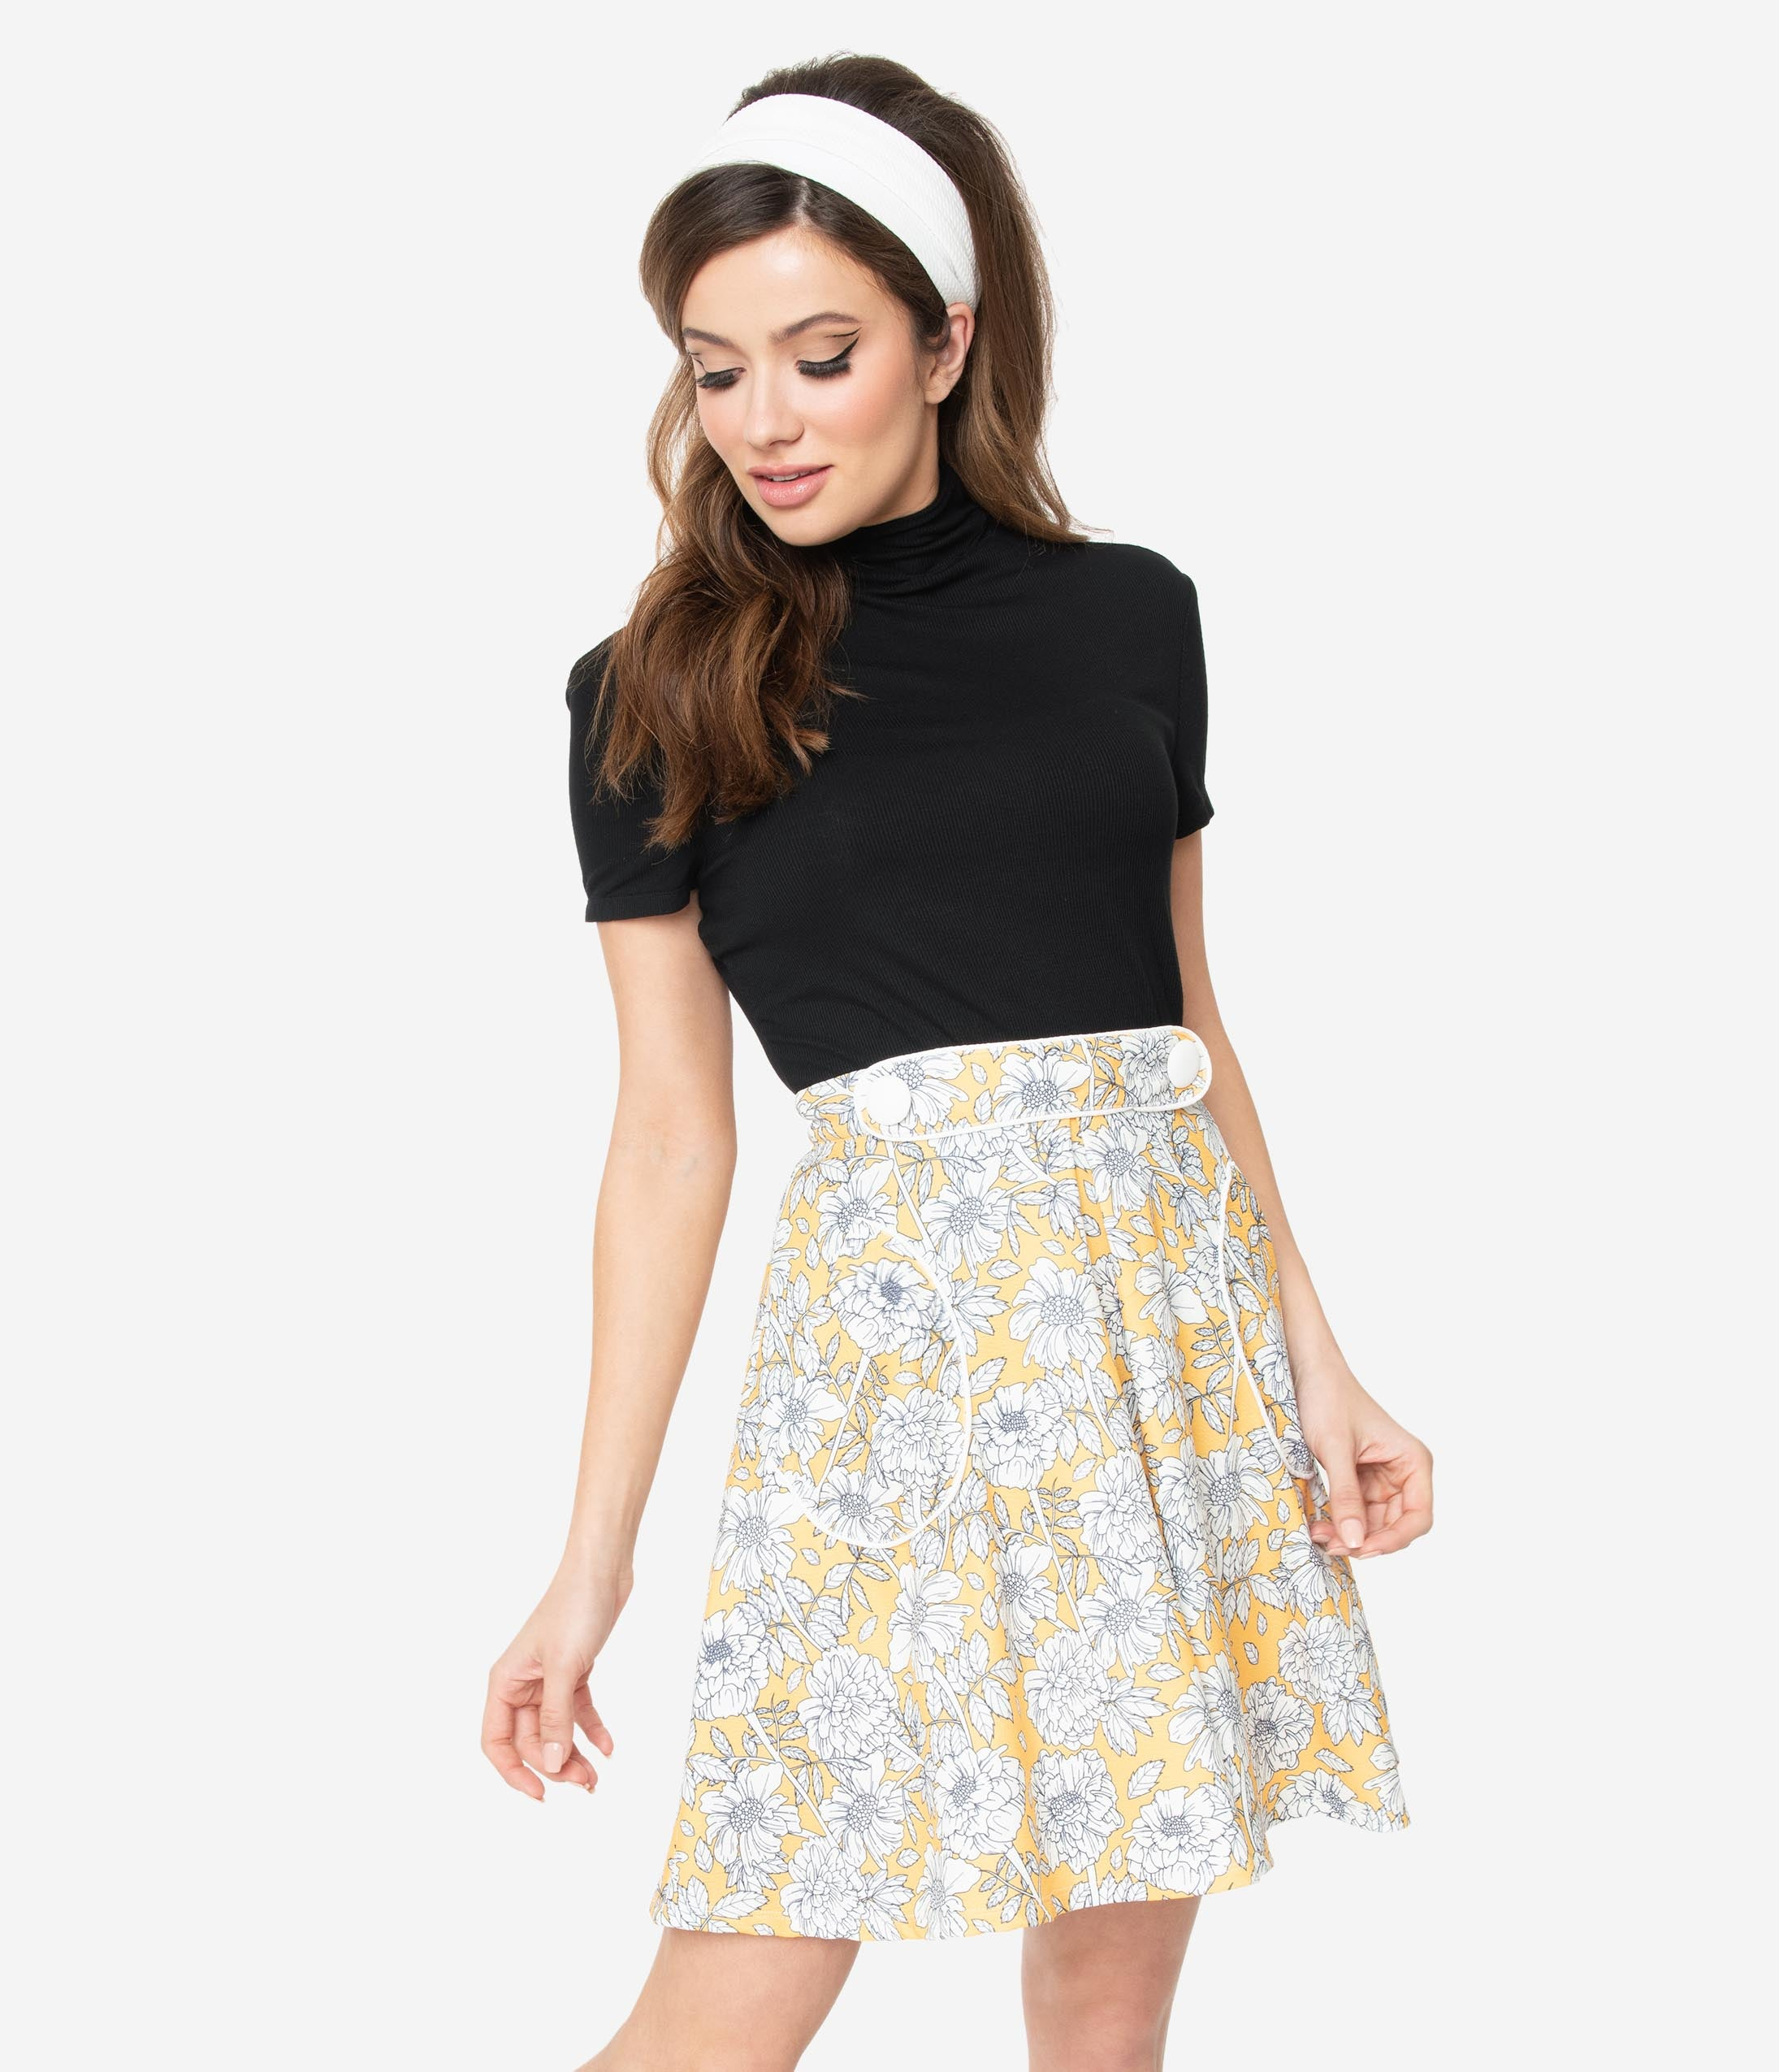 Hippie Costumes, Hippie Outfits Smak Parlour 1960S Yellow  White Floral Trend Setter Flare Skirt $48.00 AT vintagedancer.com